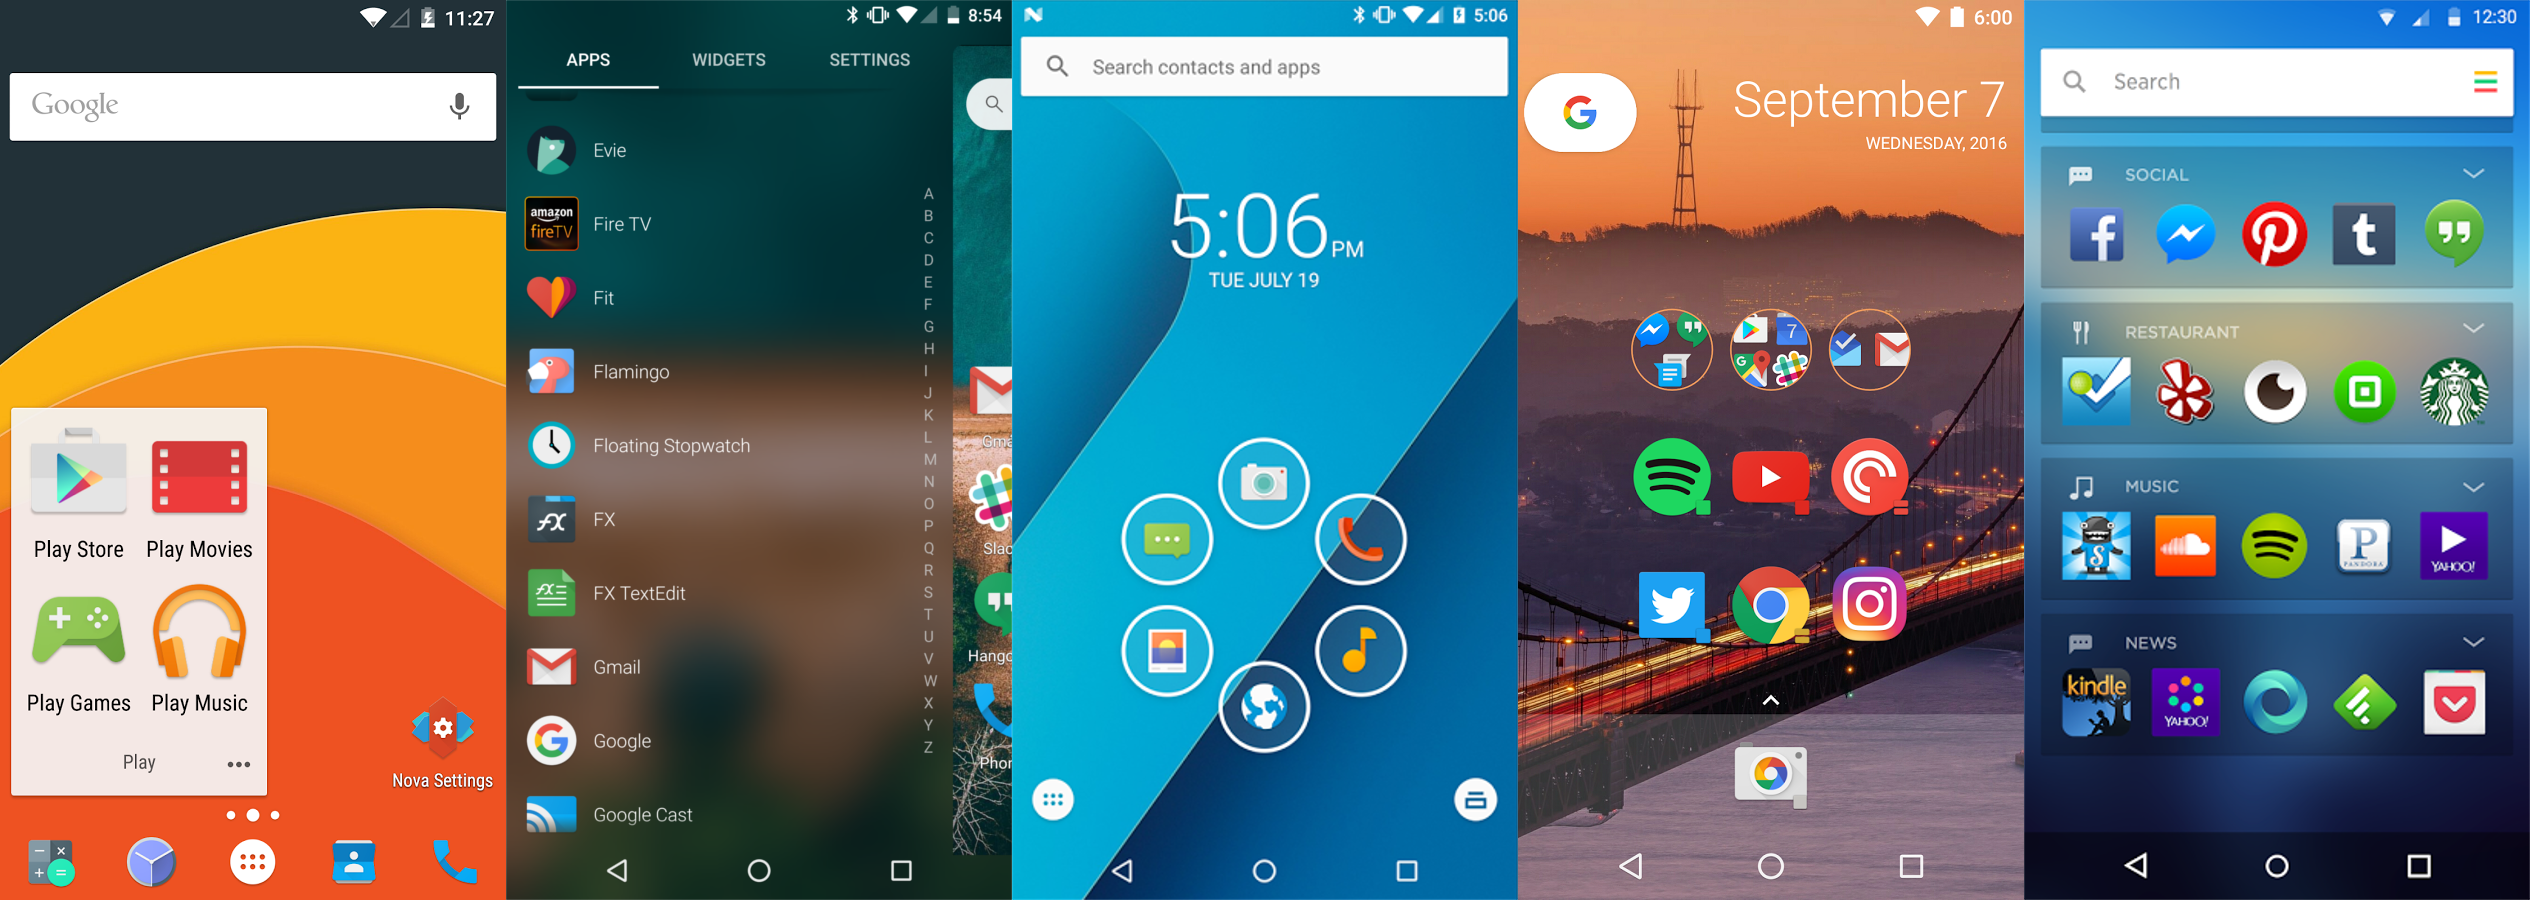 10 Ways to make your Android phone look and feel completely new